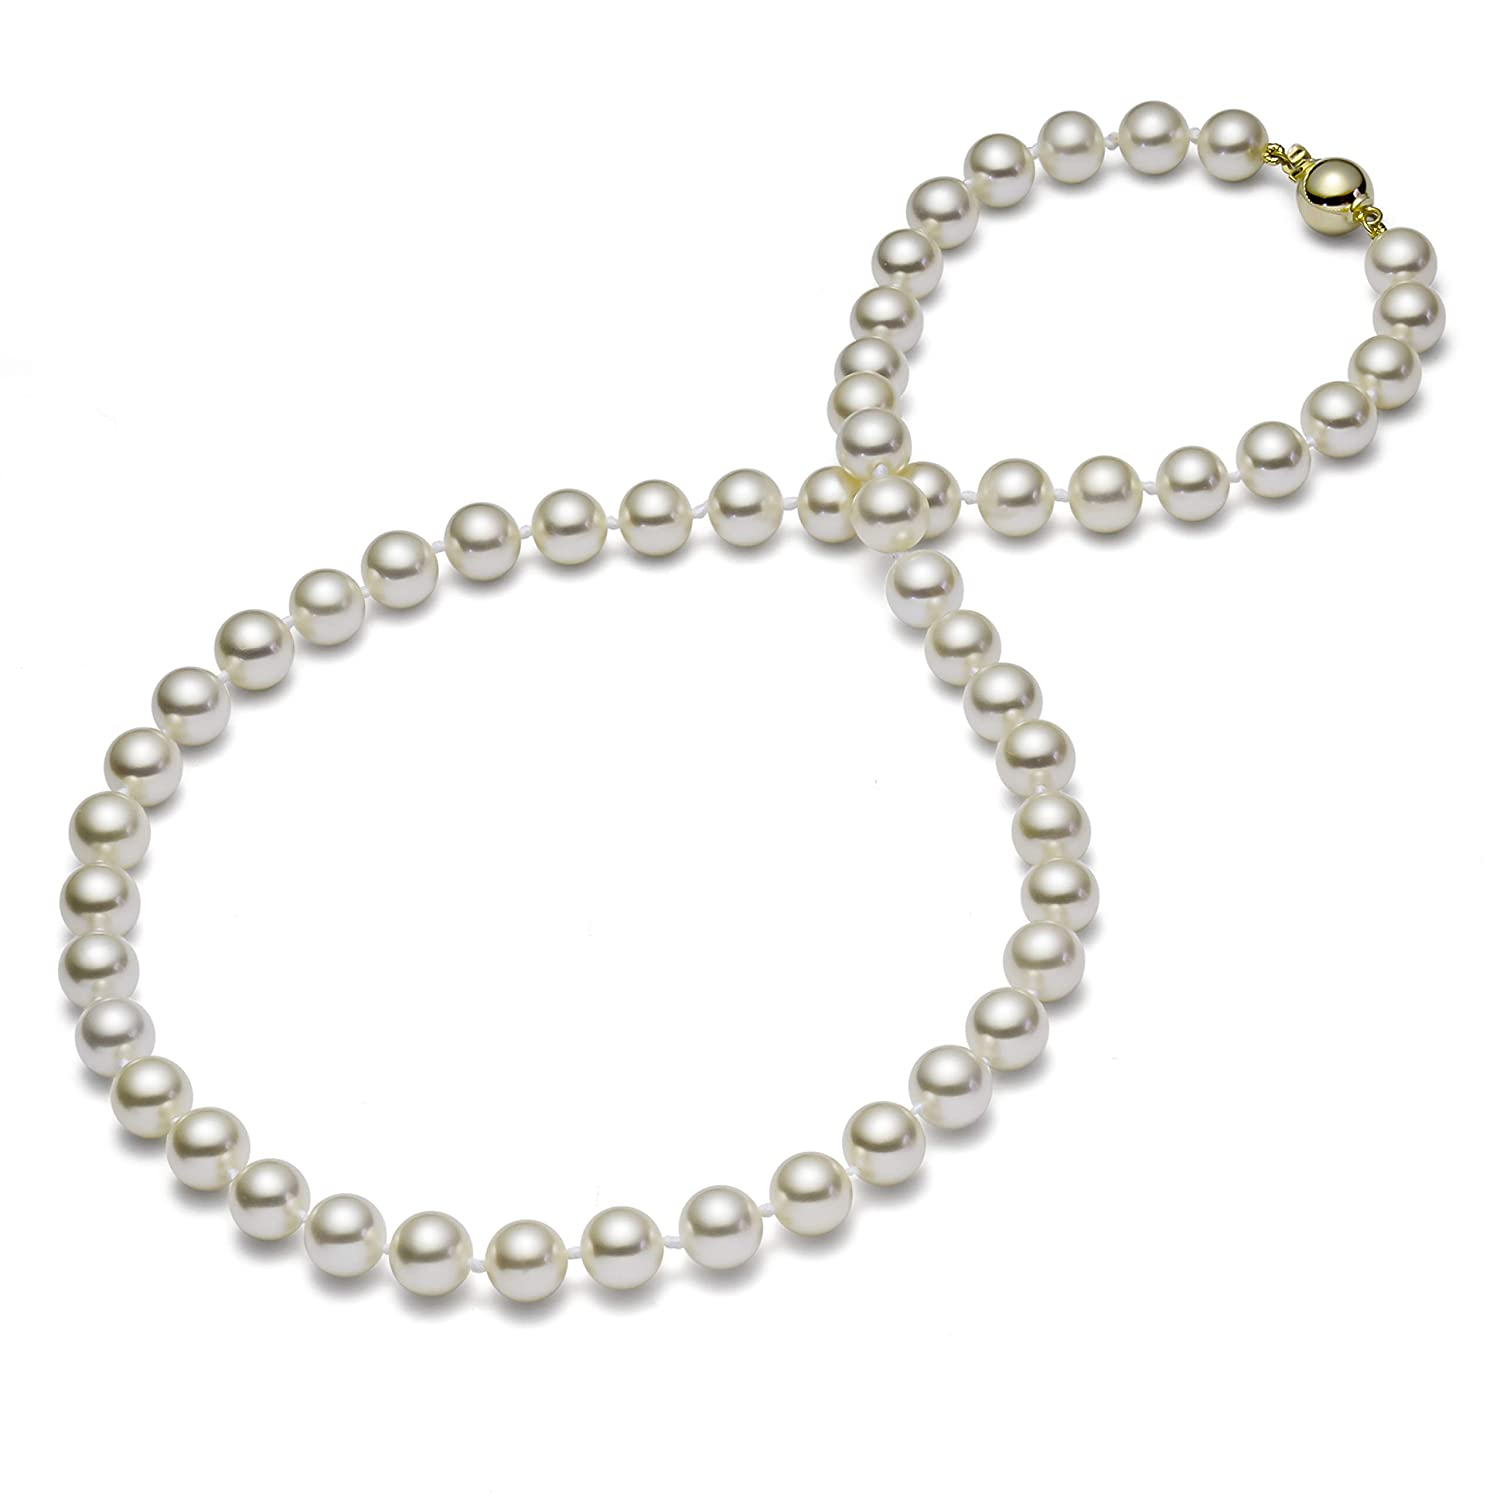 9bad96446a2 Amazon.com: HinsonGayle AAA GEM 7.5-8mm White Round Freshwater Cultured Pearl  Necklace (14K Yellow Gold )-18 in length: Jewelry